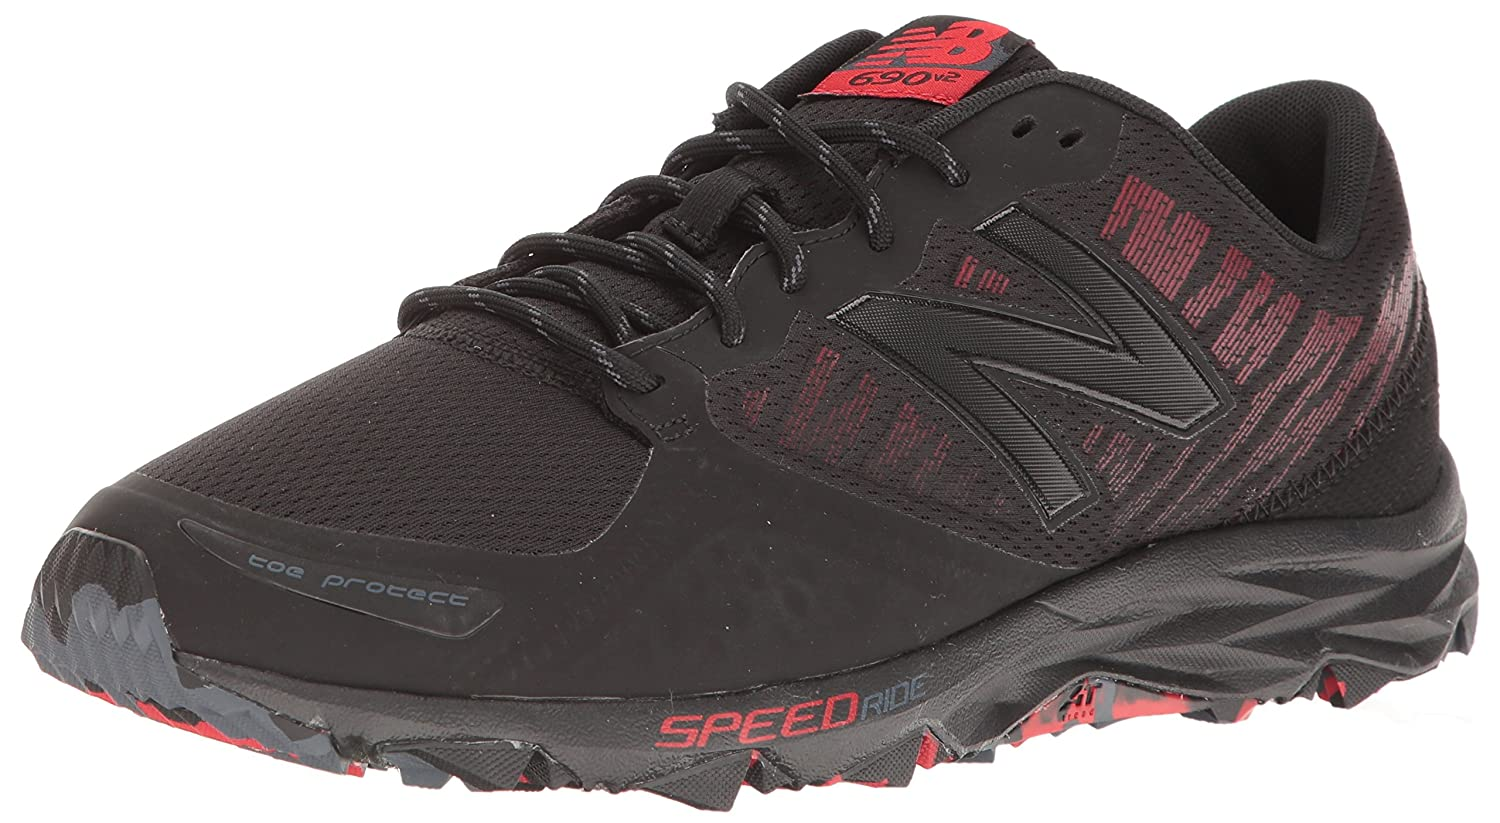 New Balance Men's MT690v2 Responsive Trail Running Shoe B01LZ9DUDH 9 4E US|Black/Alpha Red